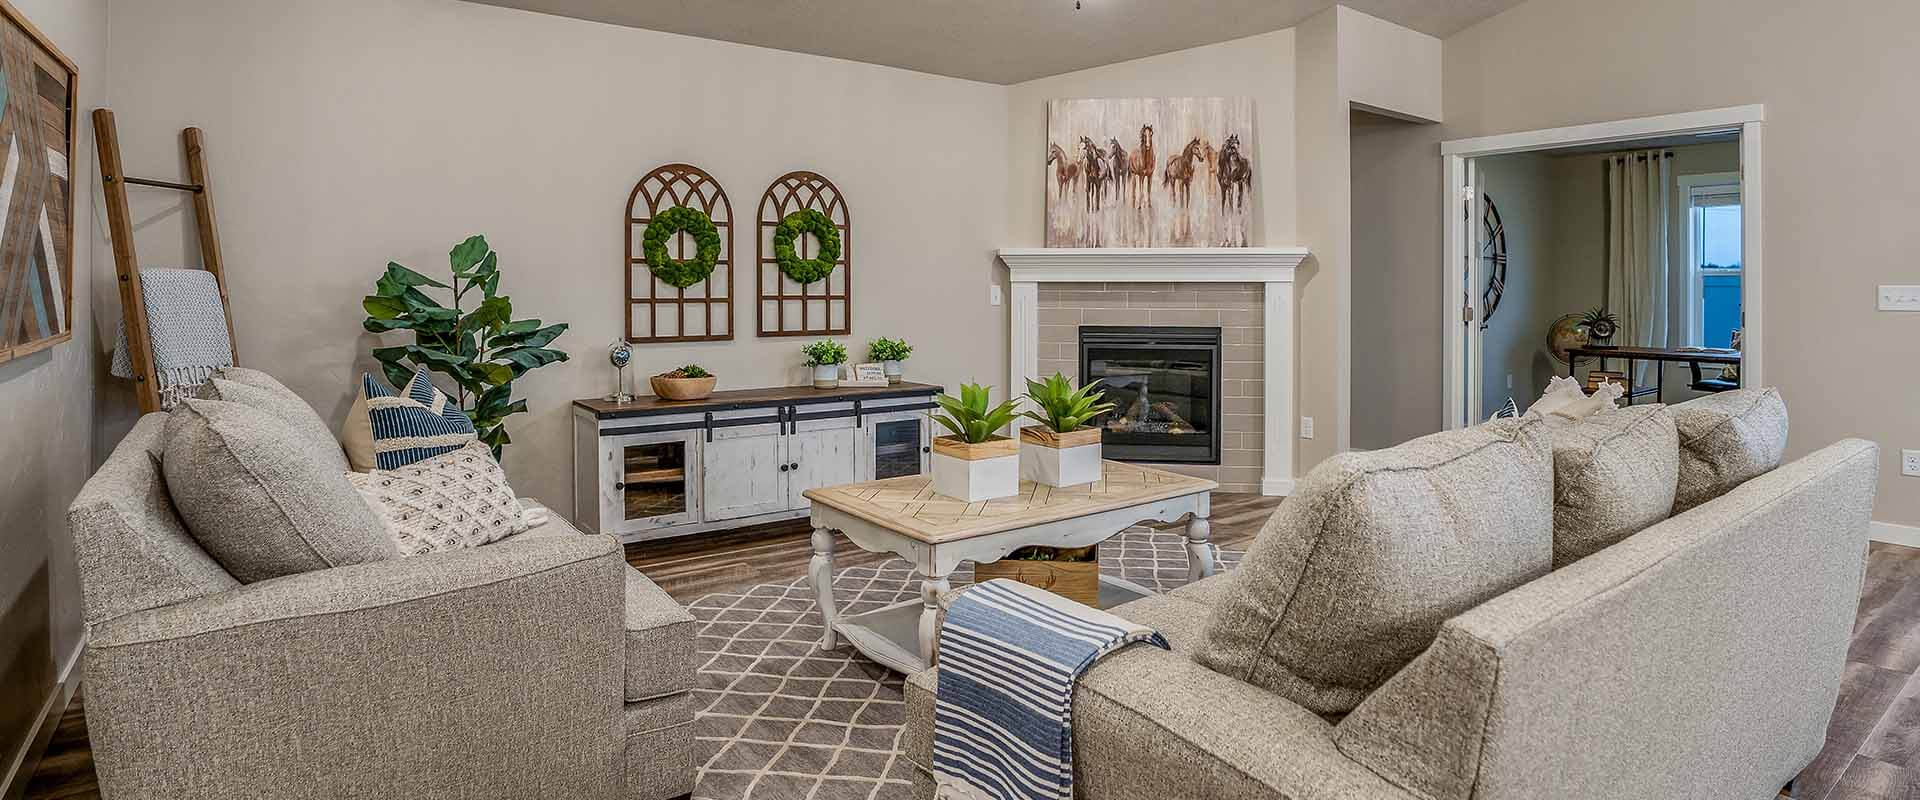 Crestwood_Hubble_Homes_New_Homes_Boise_Great Room2.jpg